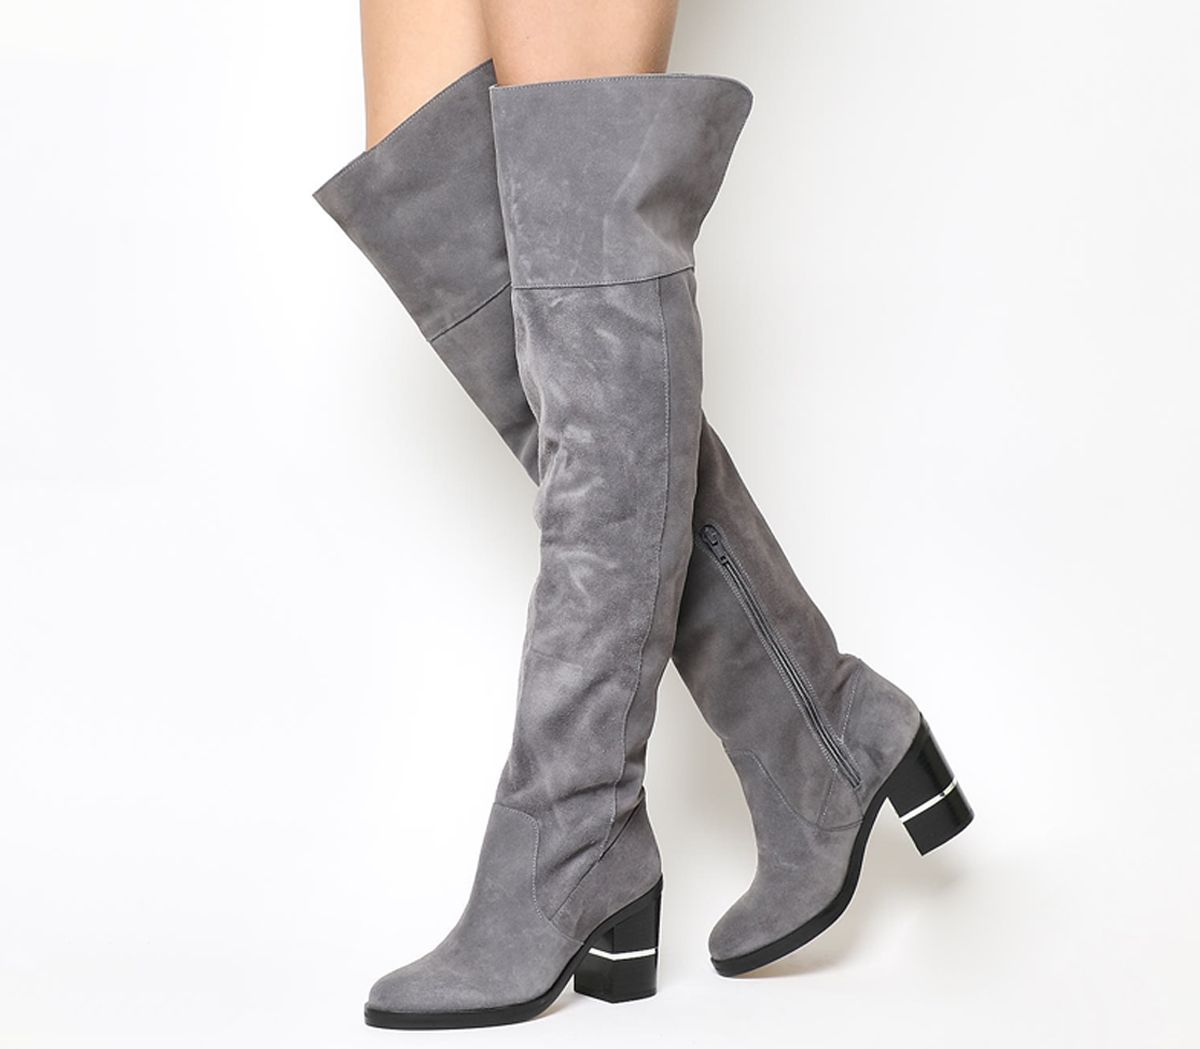 9ad95cb7e48 Office Elemental Over the Knee Boots Grey Suede - Knee Boots